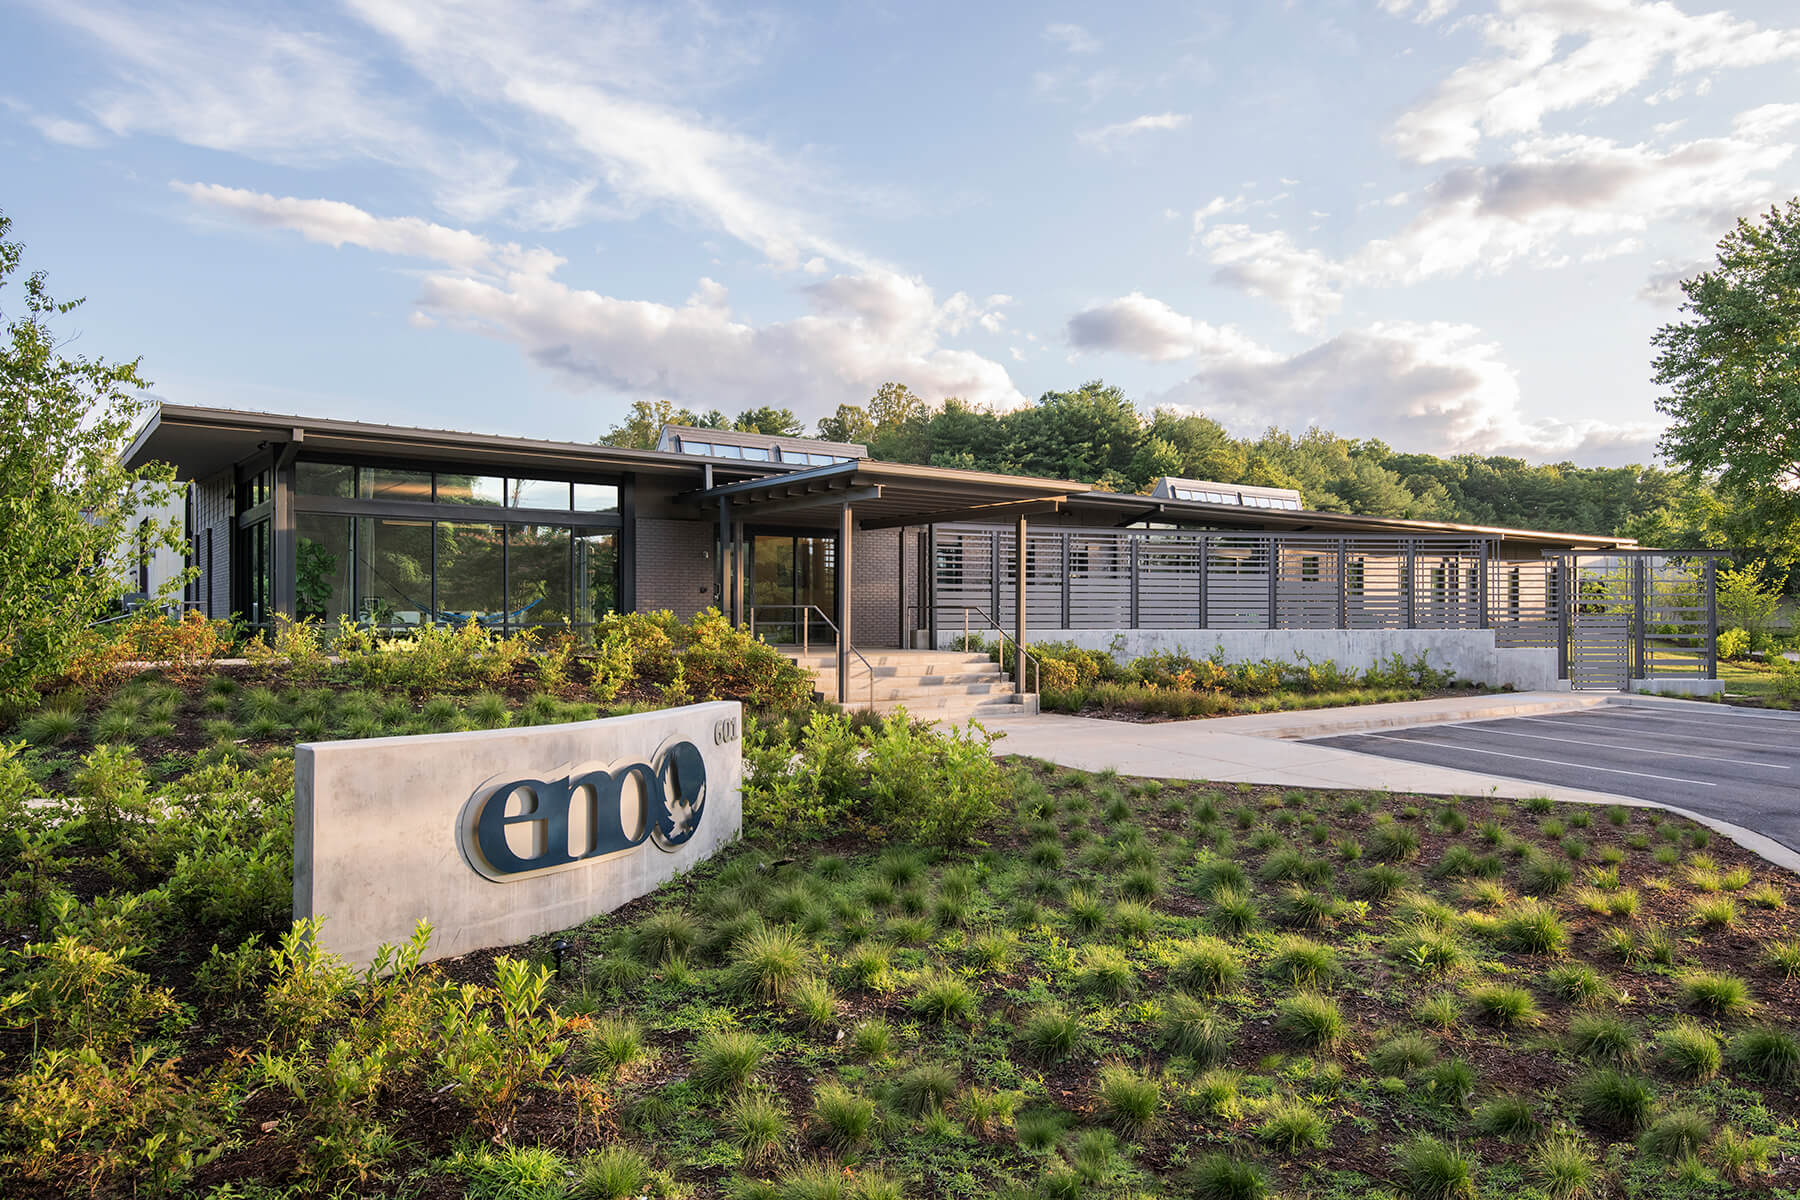 Eagles Nest Outfitters (ENO) headquarters architectural renovation project in WNC